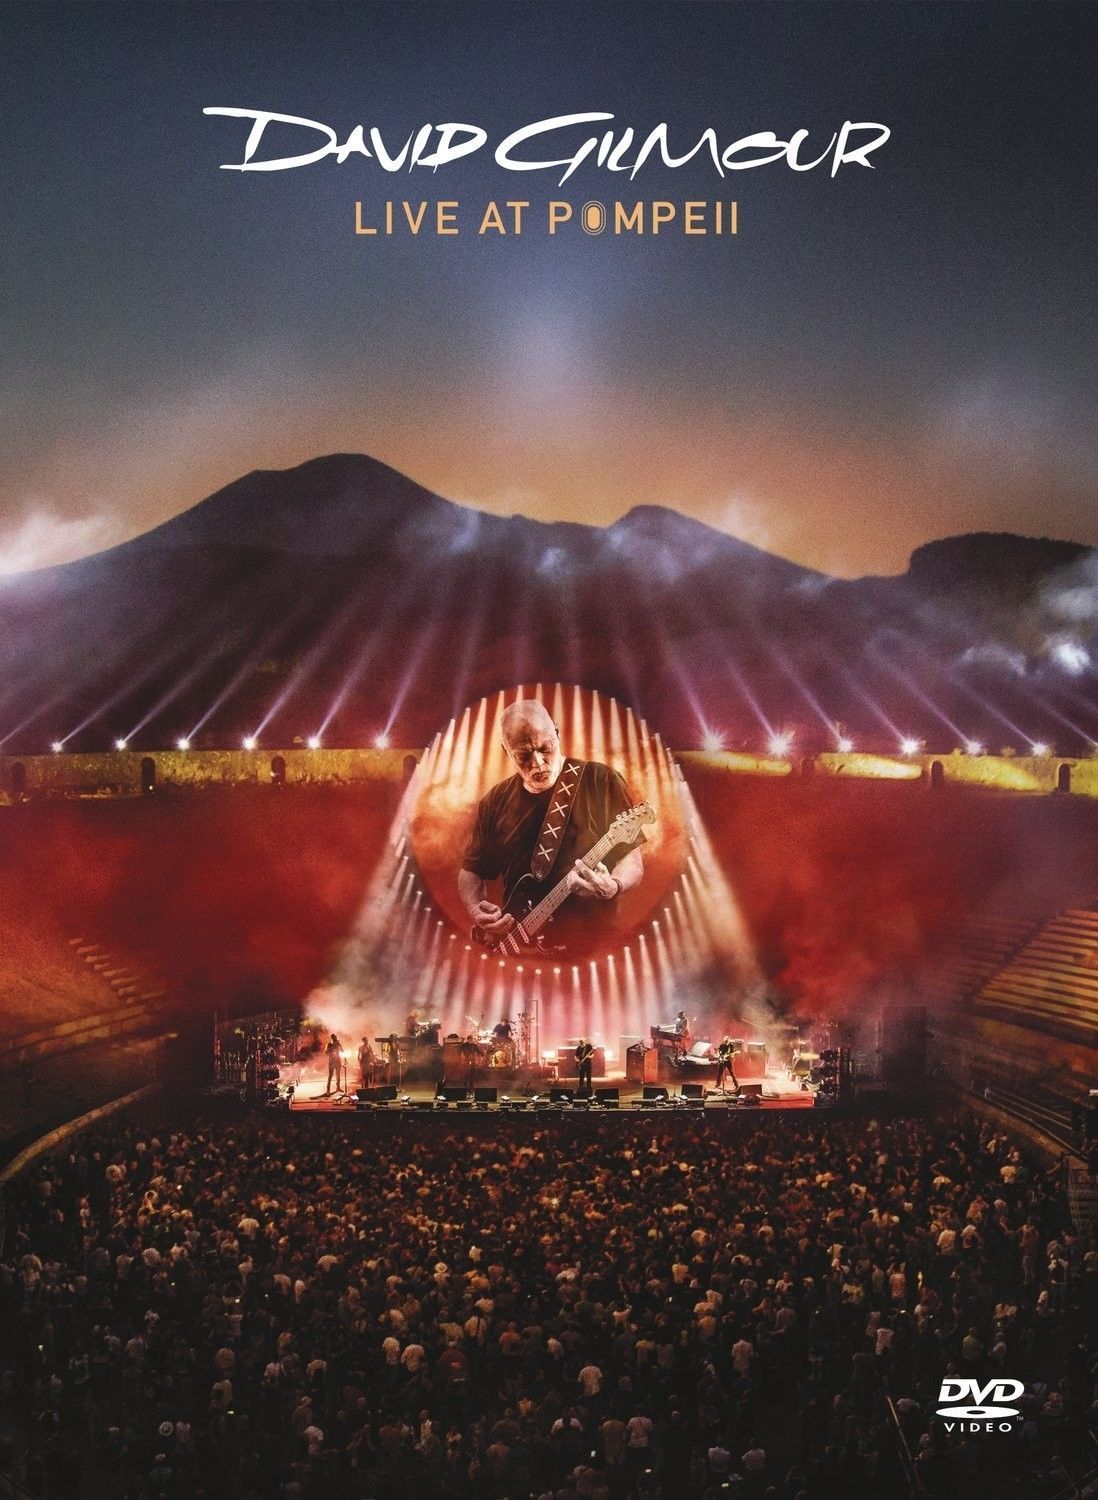 GILMOUR, DAVID: Live At Pompeii